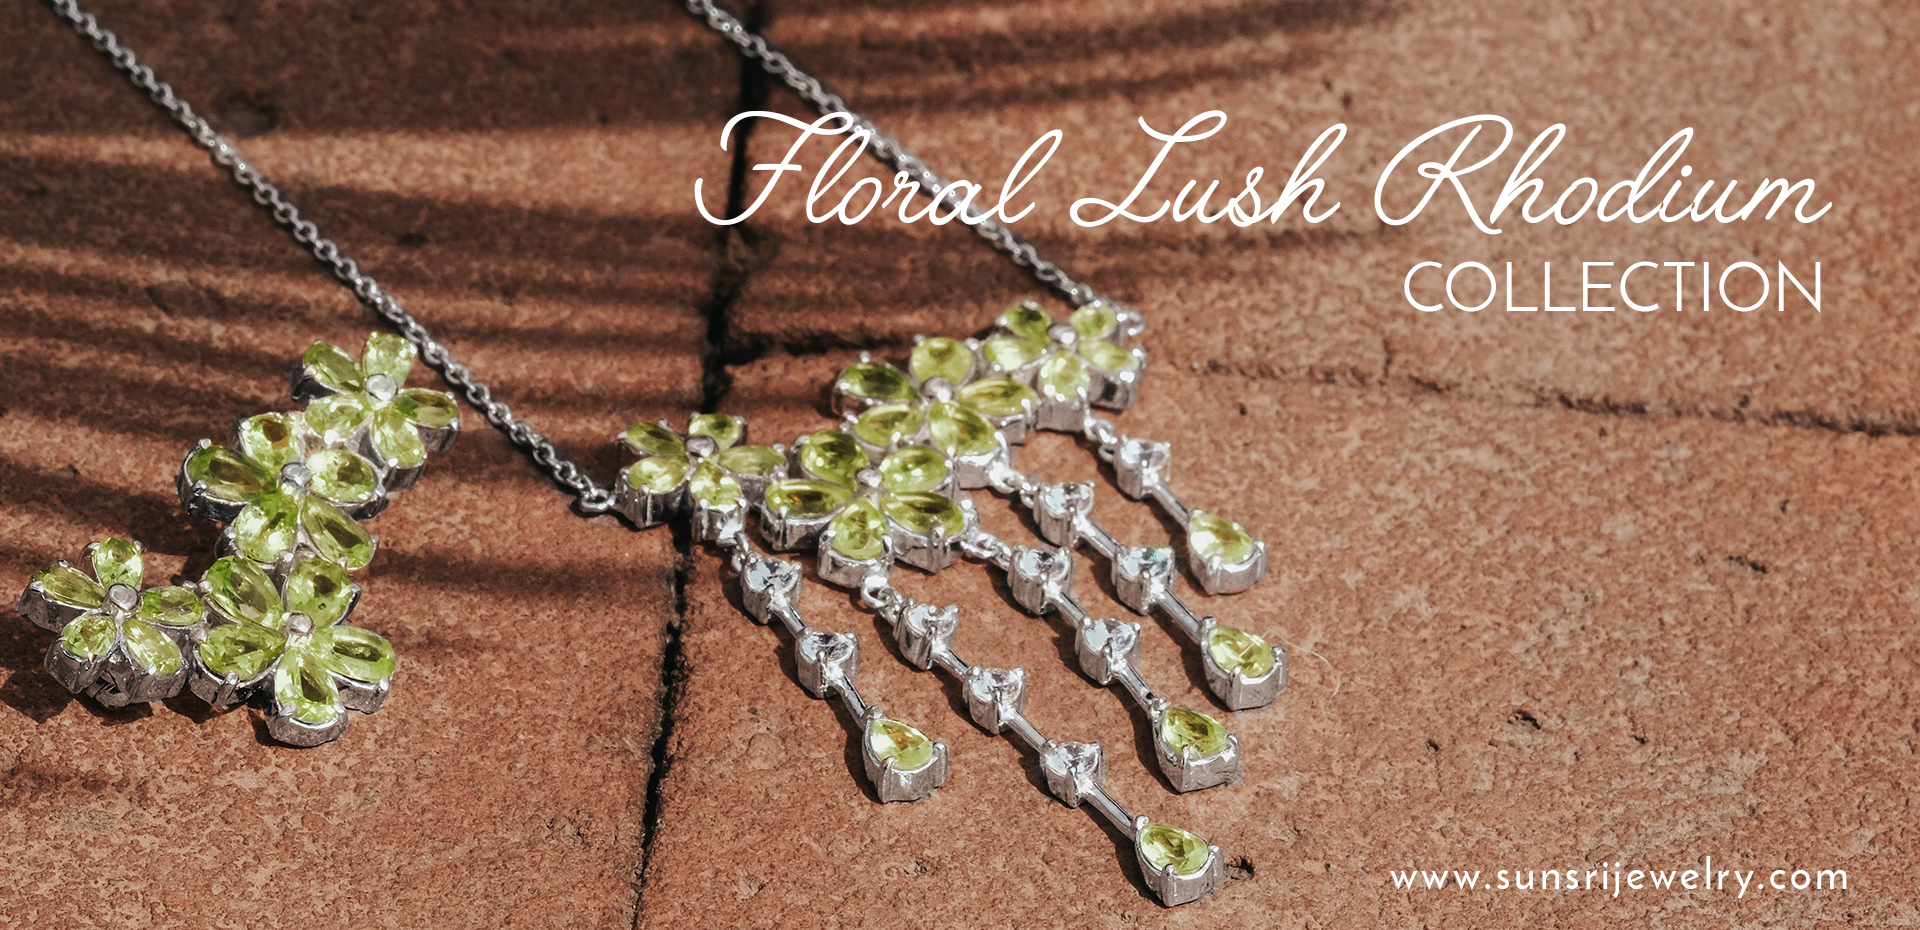 Floral Lush Collection